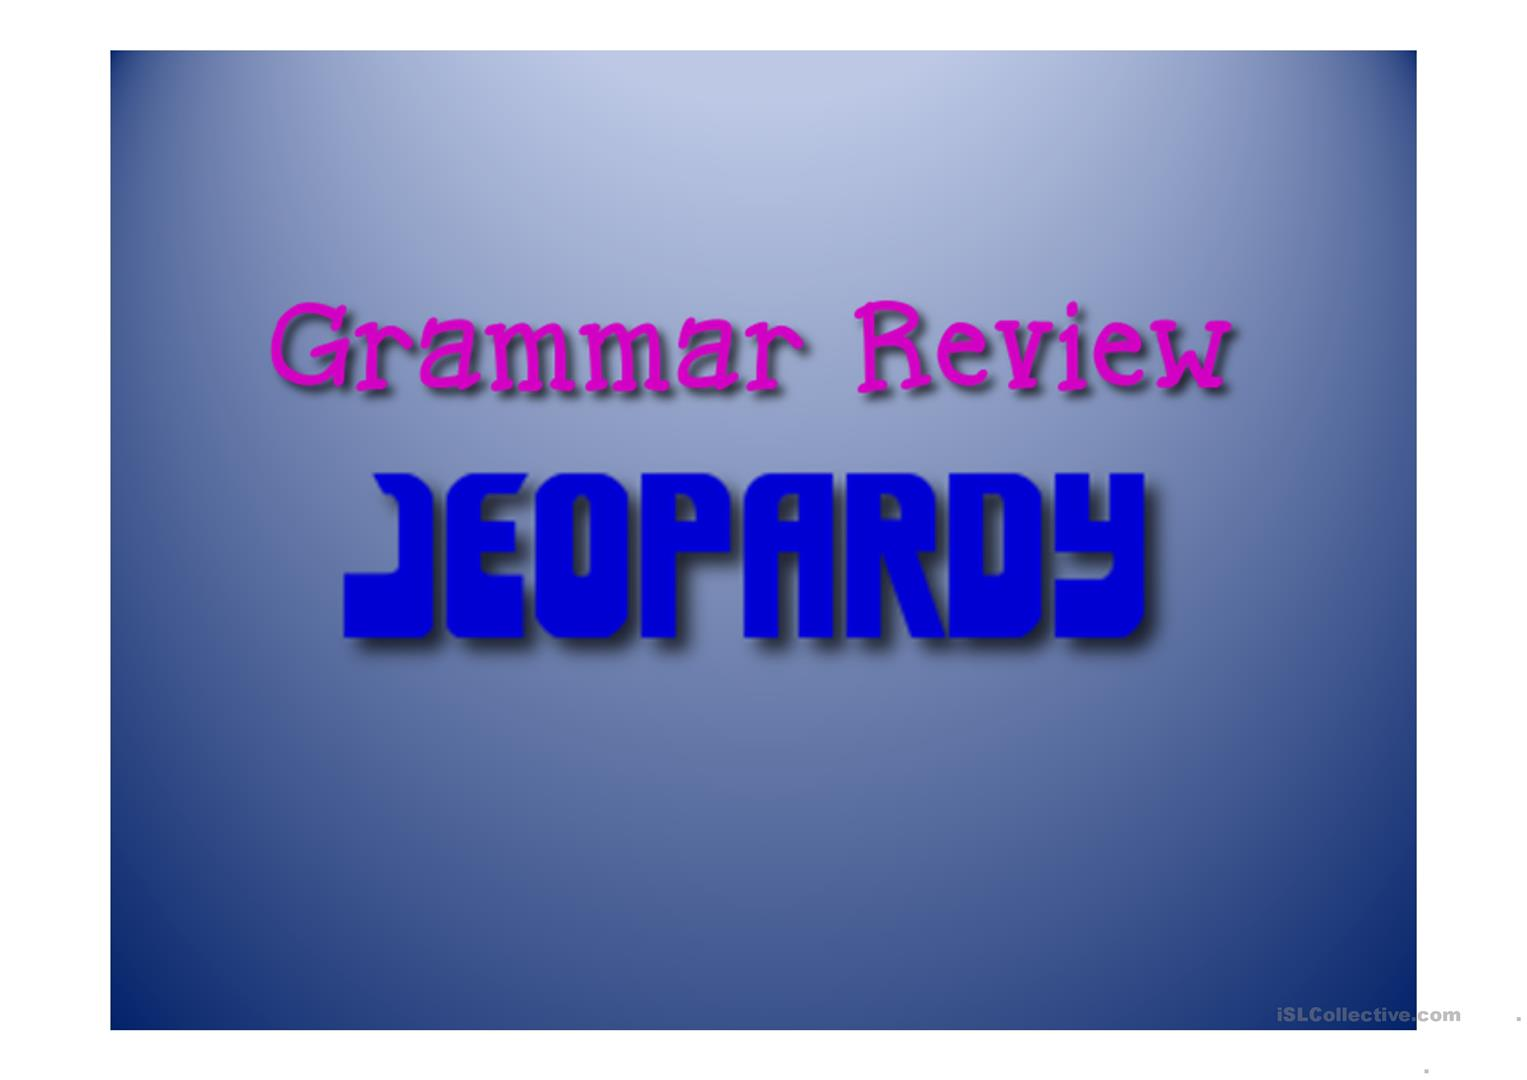 Grammar Review Jeopardy Game worksheet - Free ESL projectable